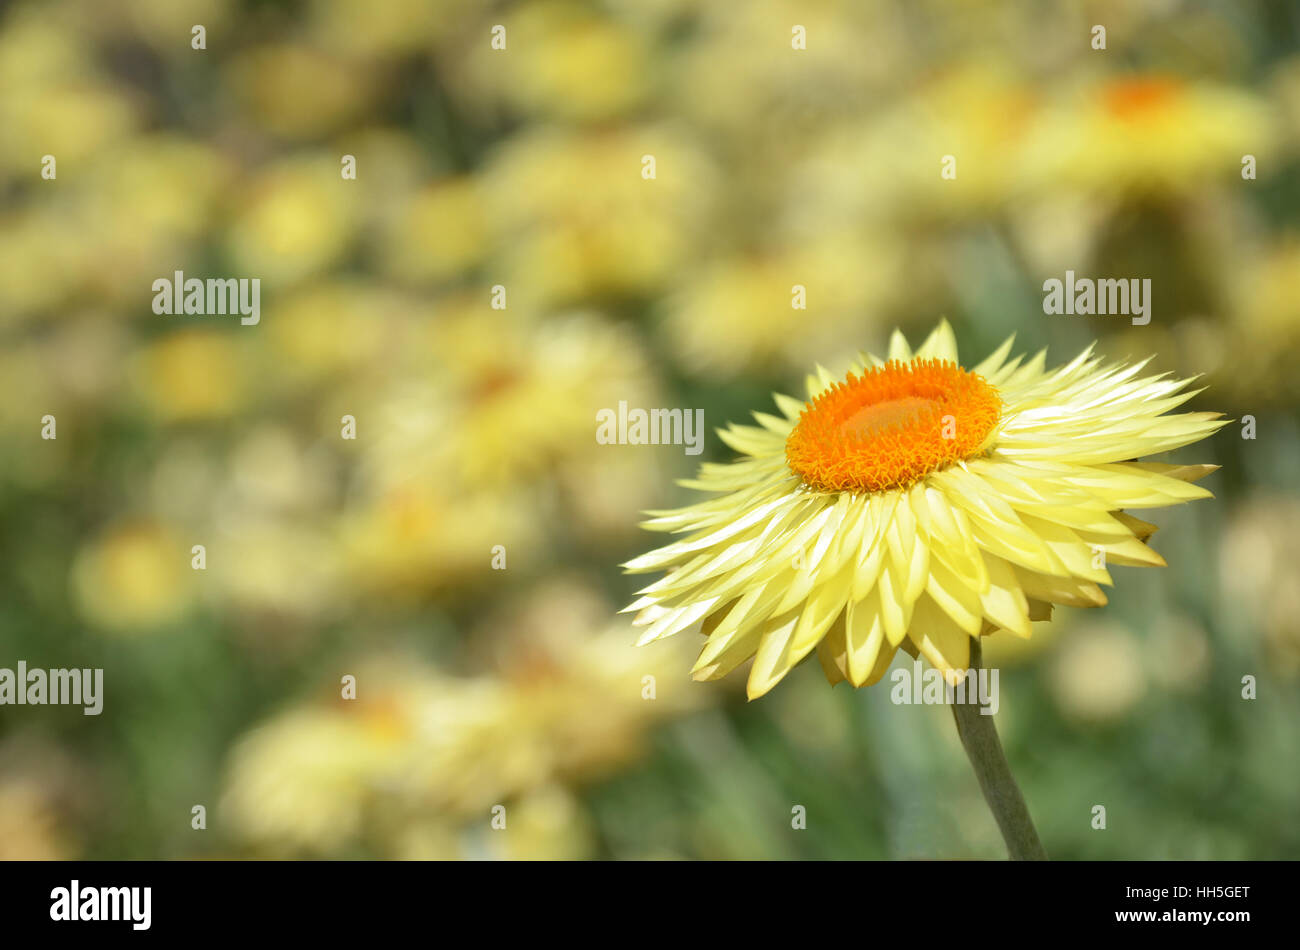 Australian Native Yellow Paper Daisy Flower Background Also Known